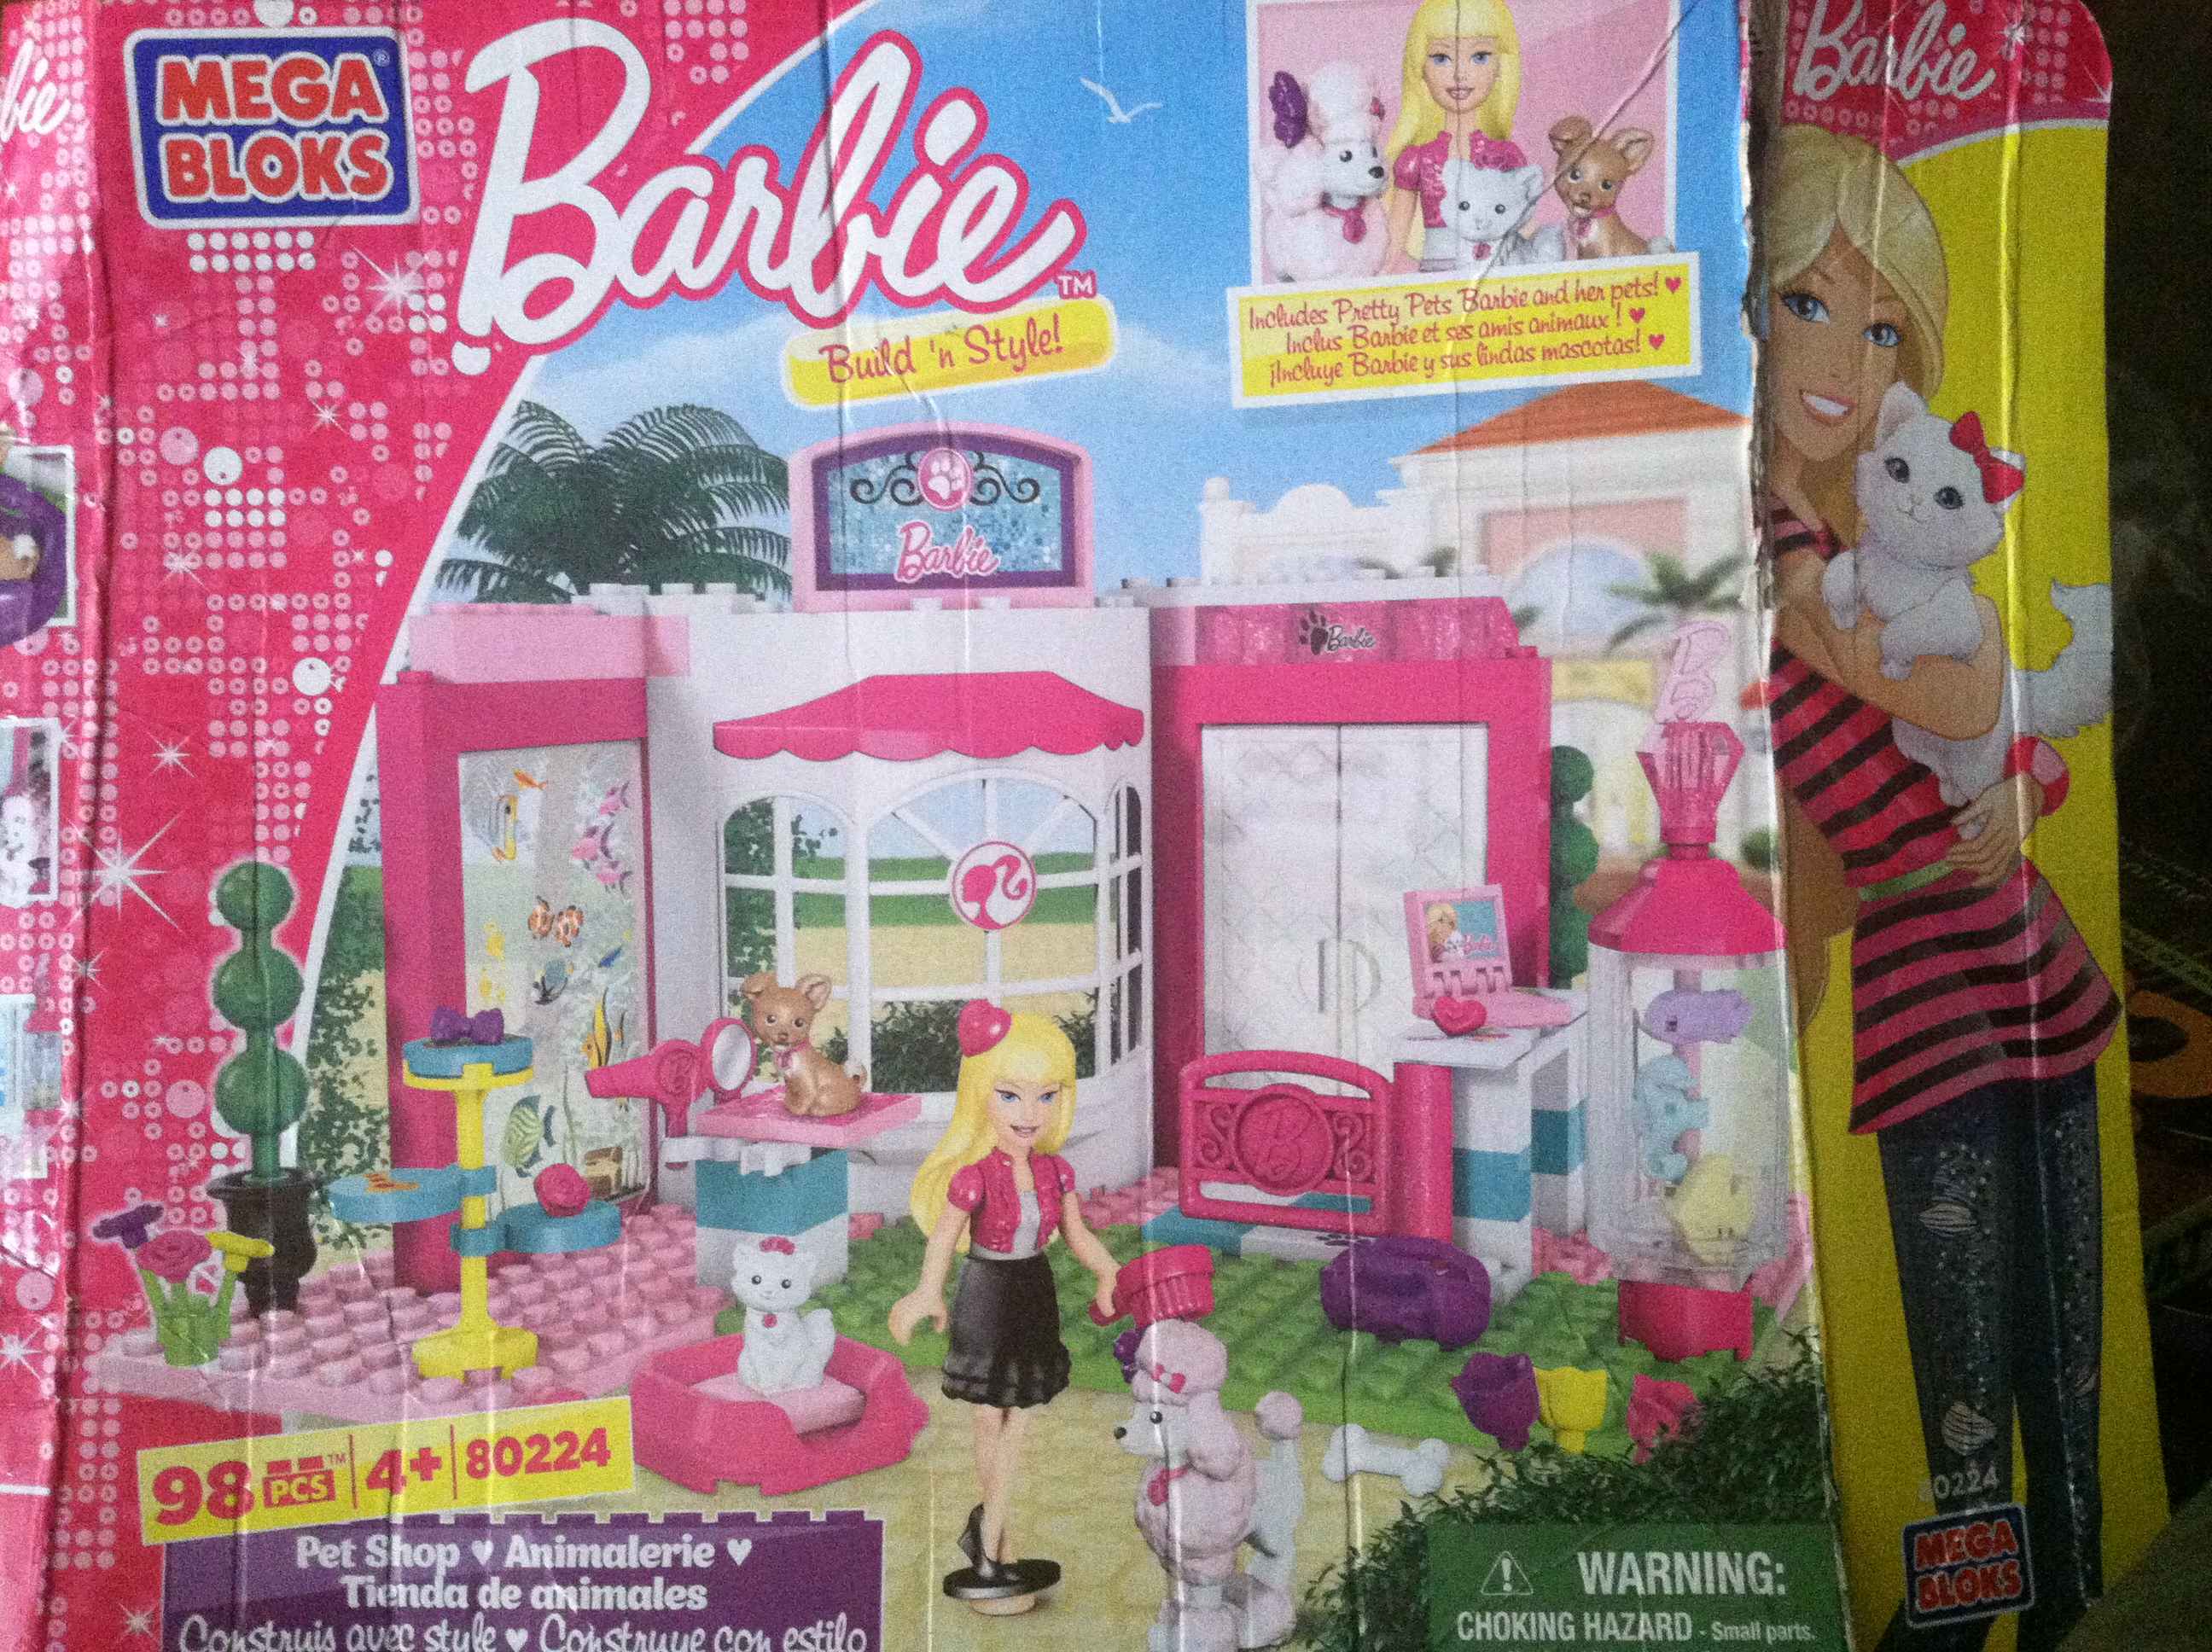 Mega Bloks Barbie Build 'n Style Pet Shop